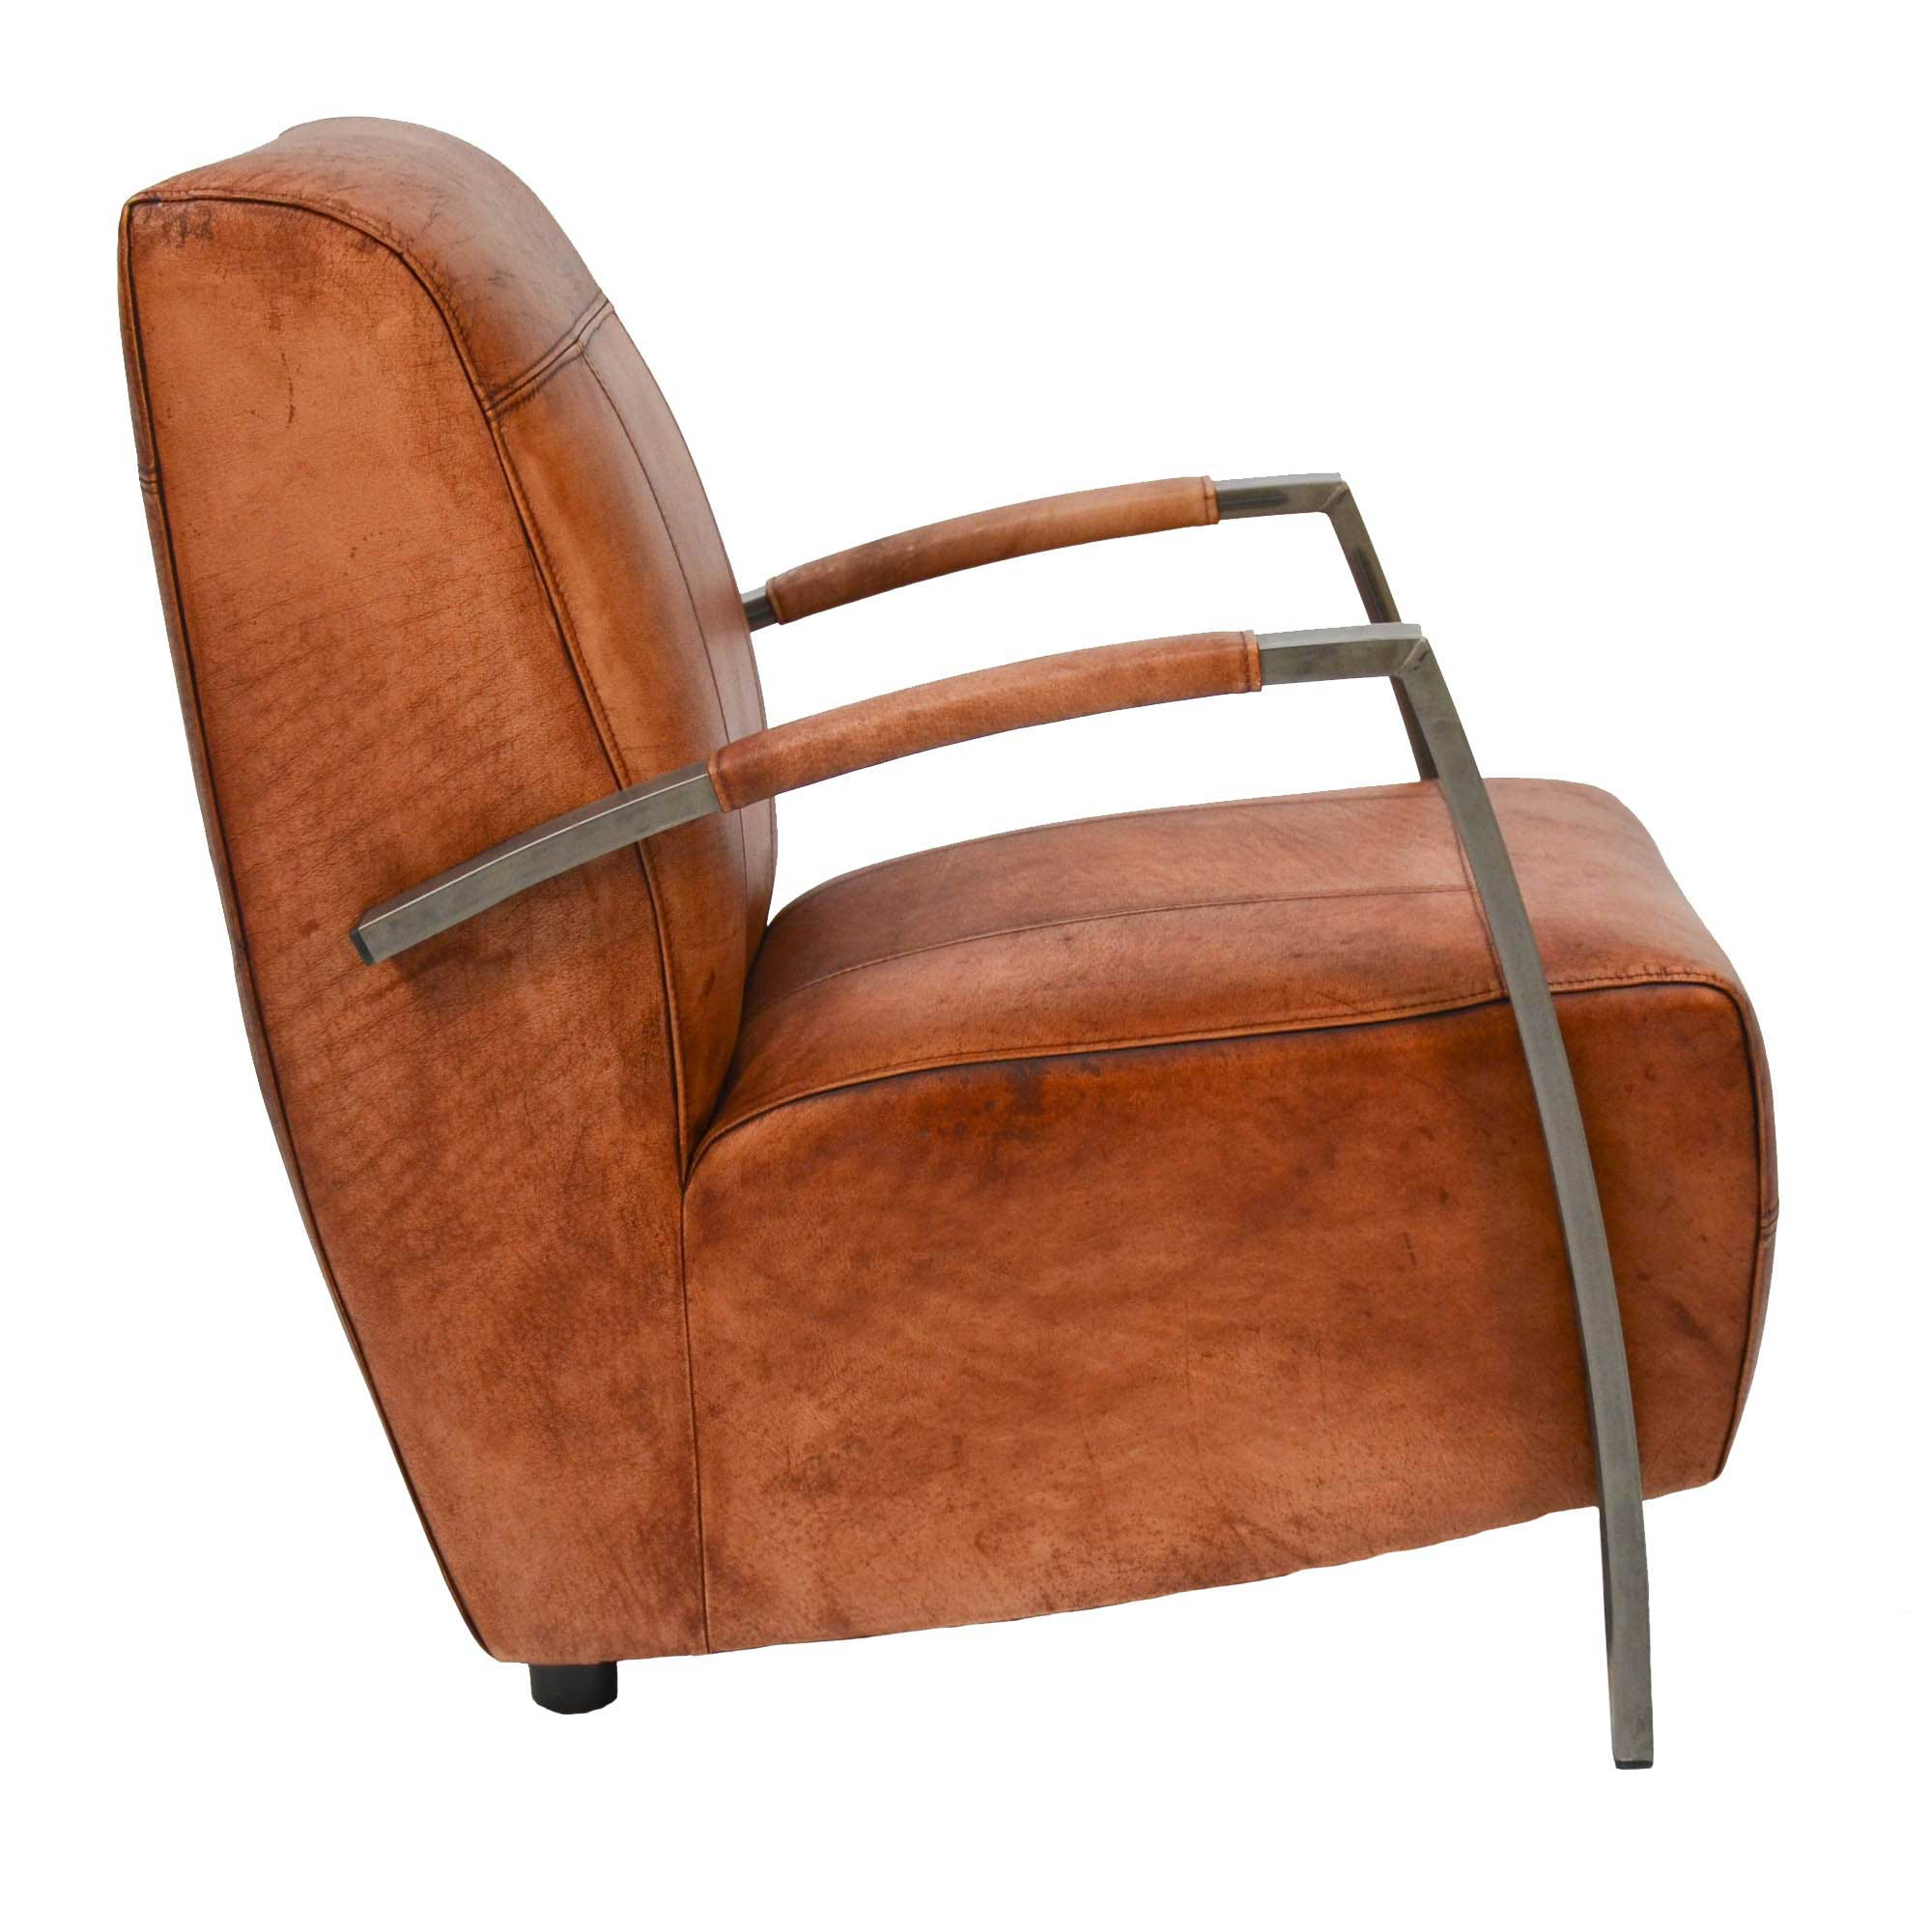 Lounge Sessel Leder Cognac Lounge Sessel King Livior Möbel Im Industrie Design